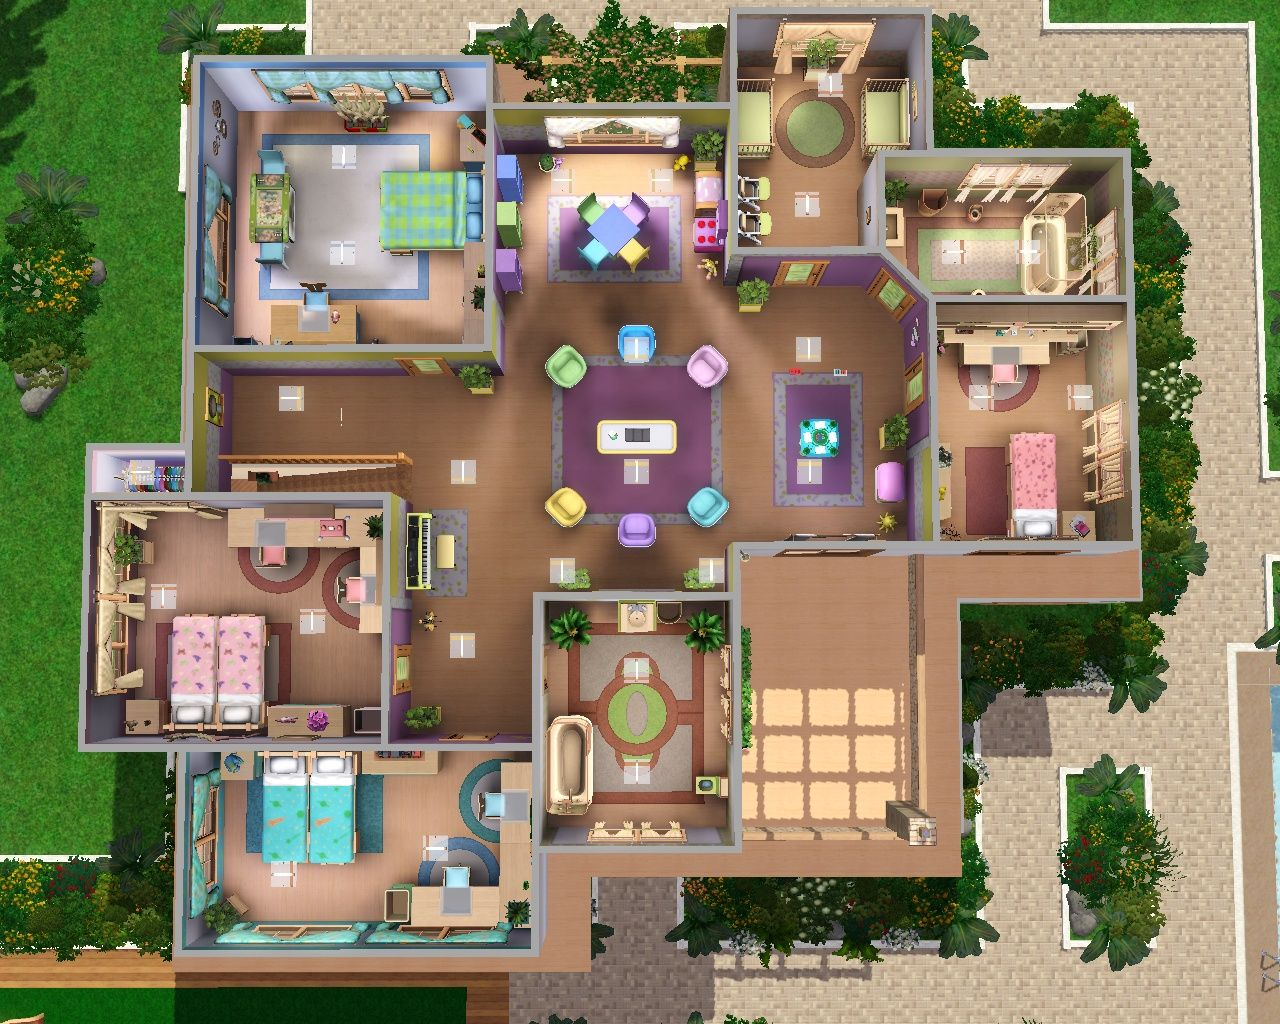 The sims social home design. The sims social home design   Home design